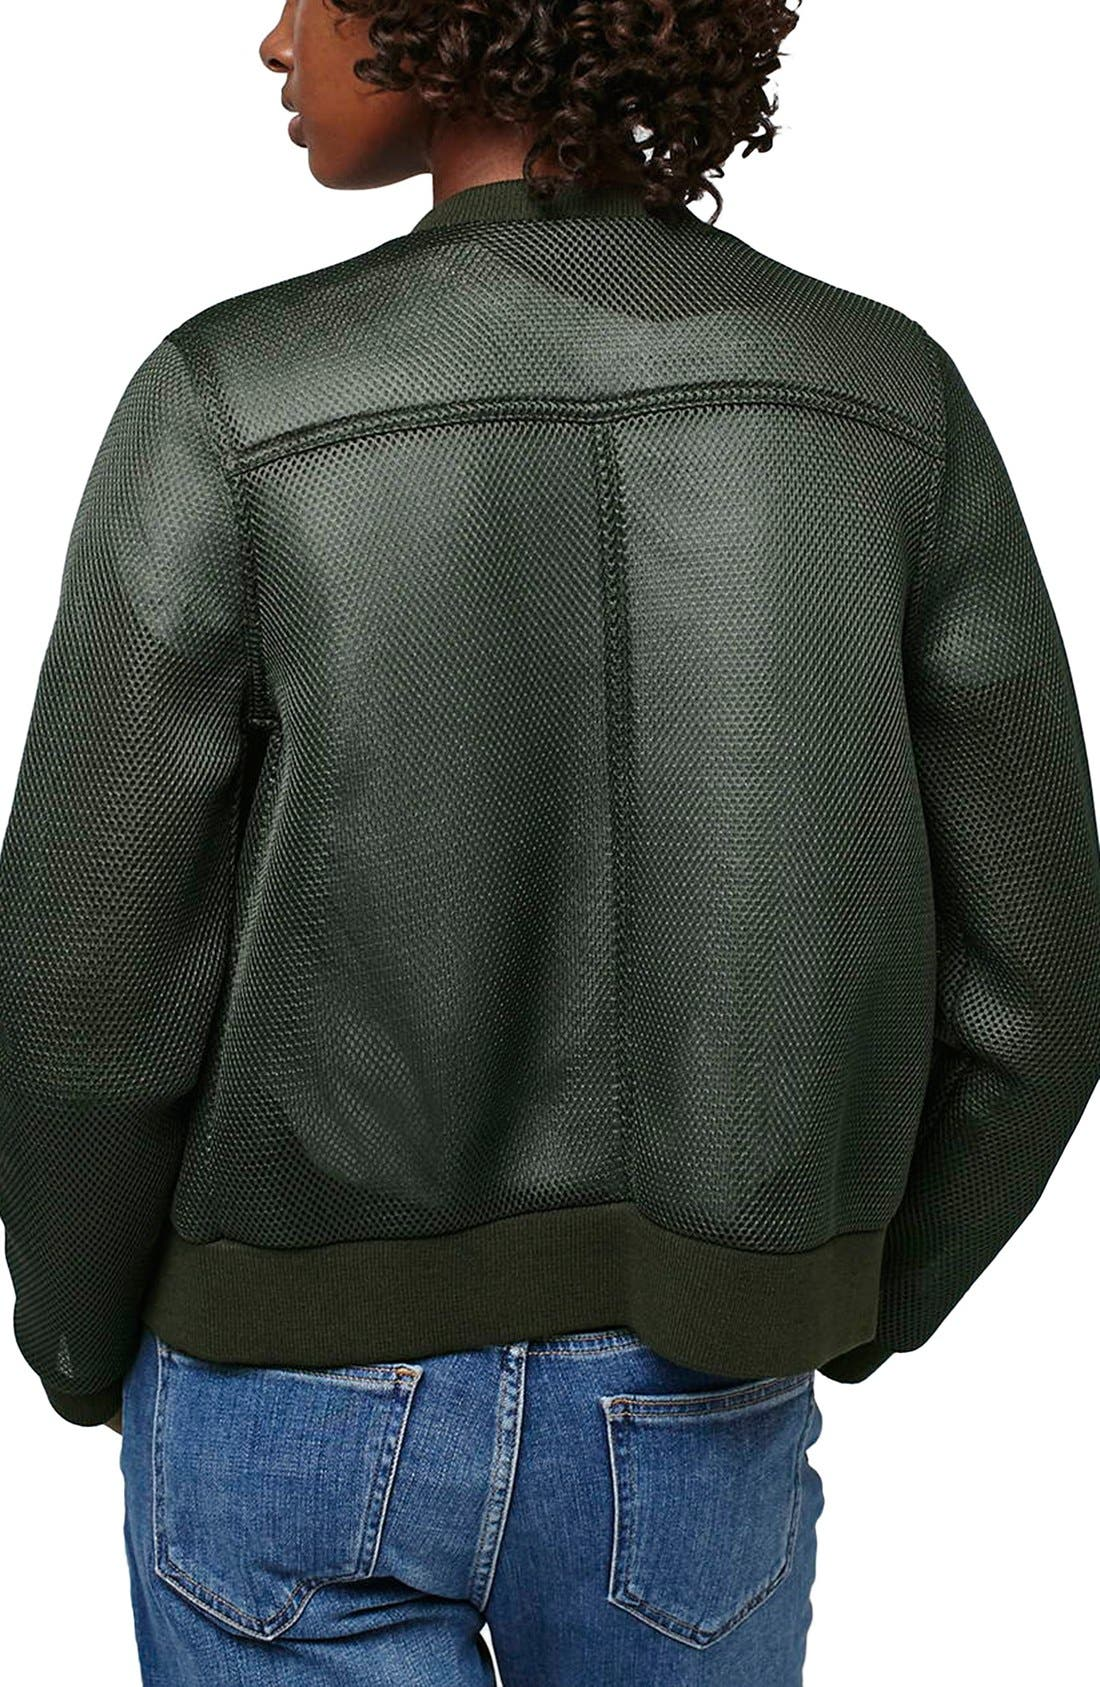 TOPSHOP, 'Airtex' Bomber Jacket, Alternate thumbnail 2, color, 300